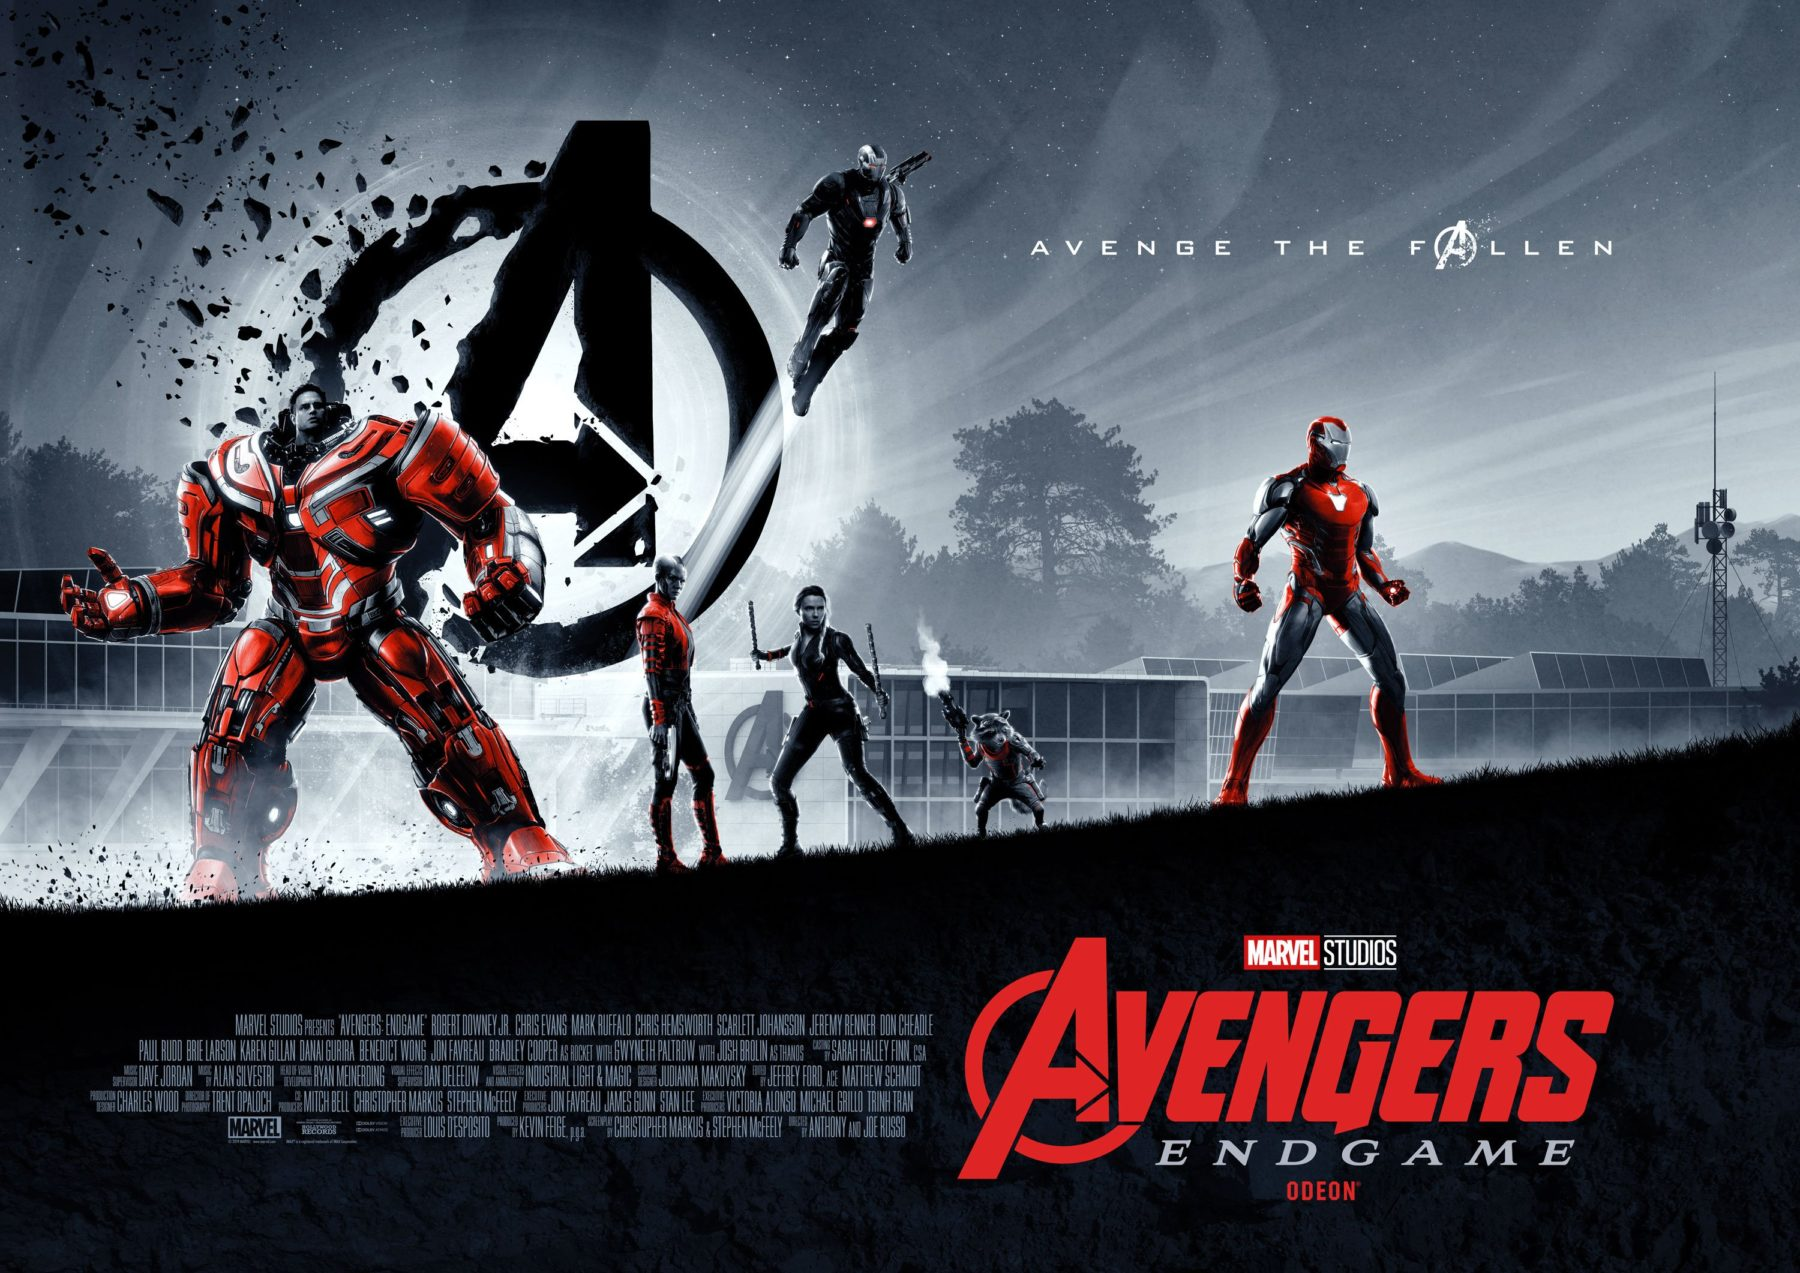 Marvel Movie Posters: Marvel's Avengers: Endgame Gets Two Illustrated Posters